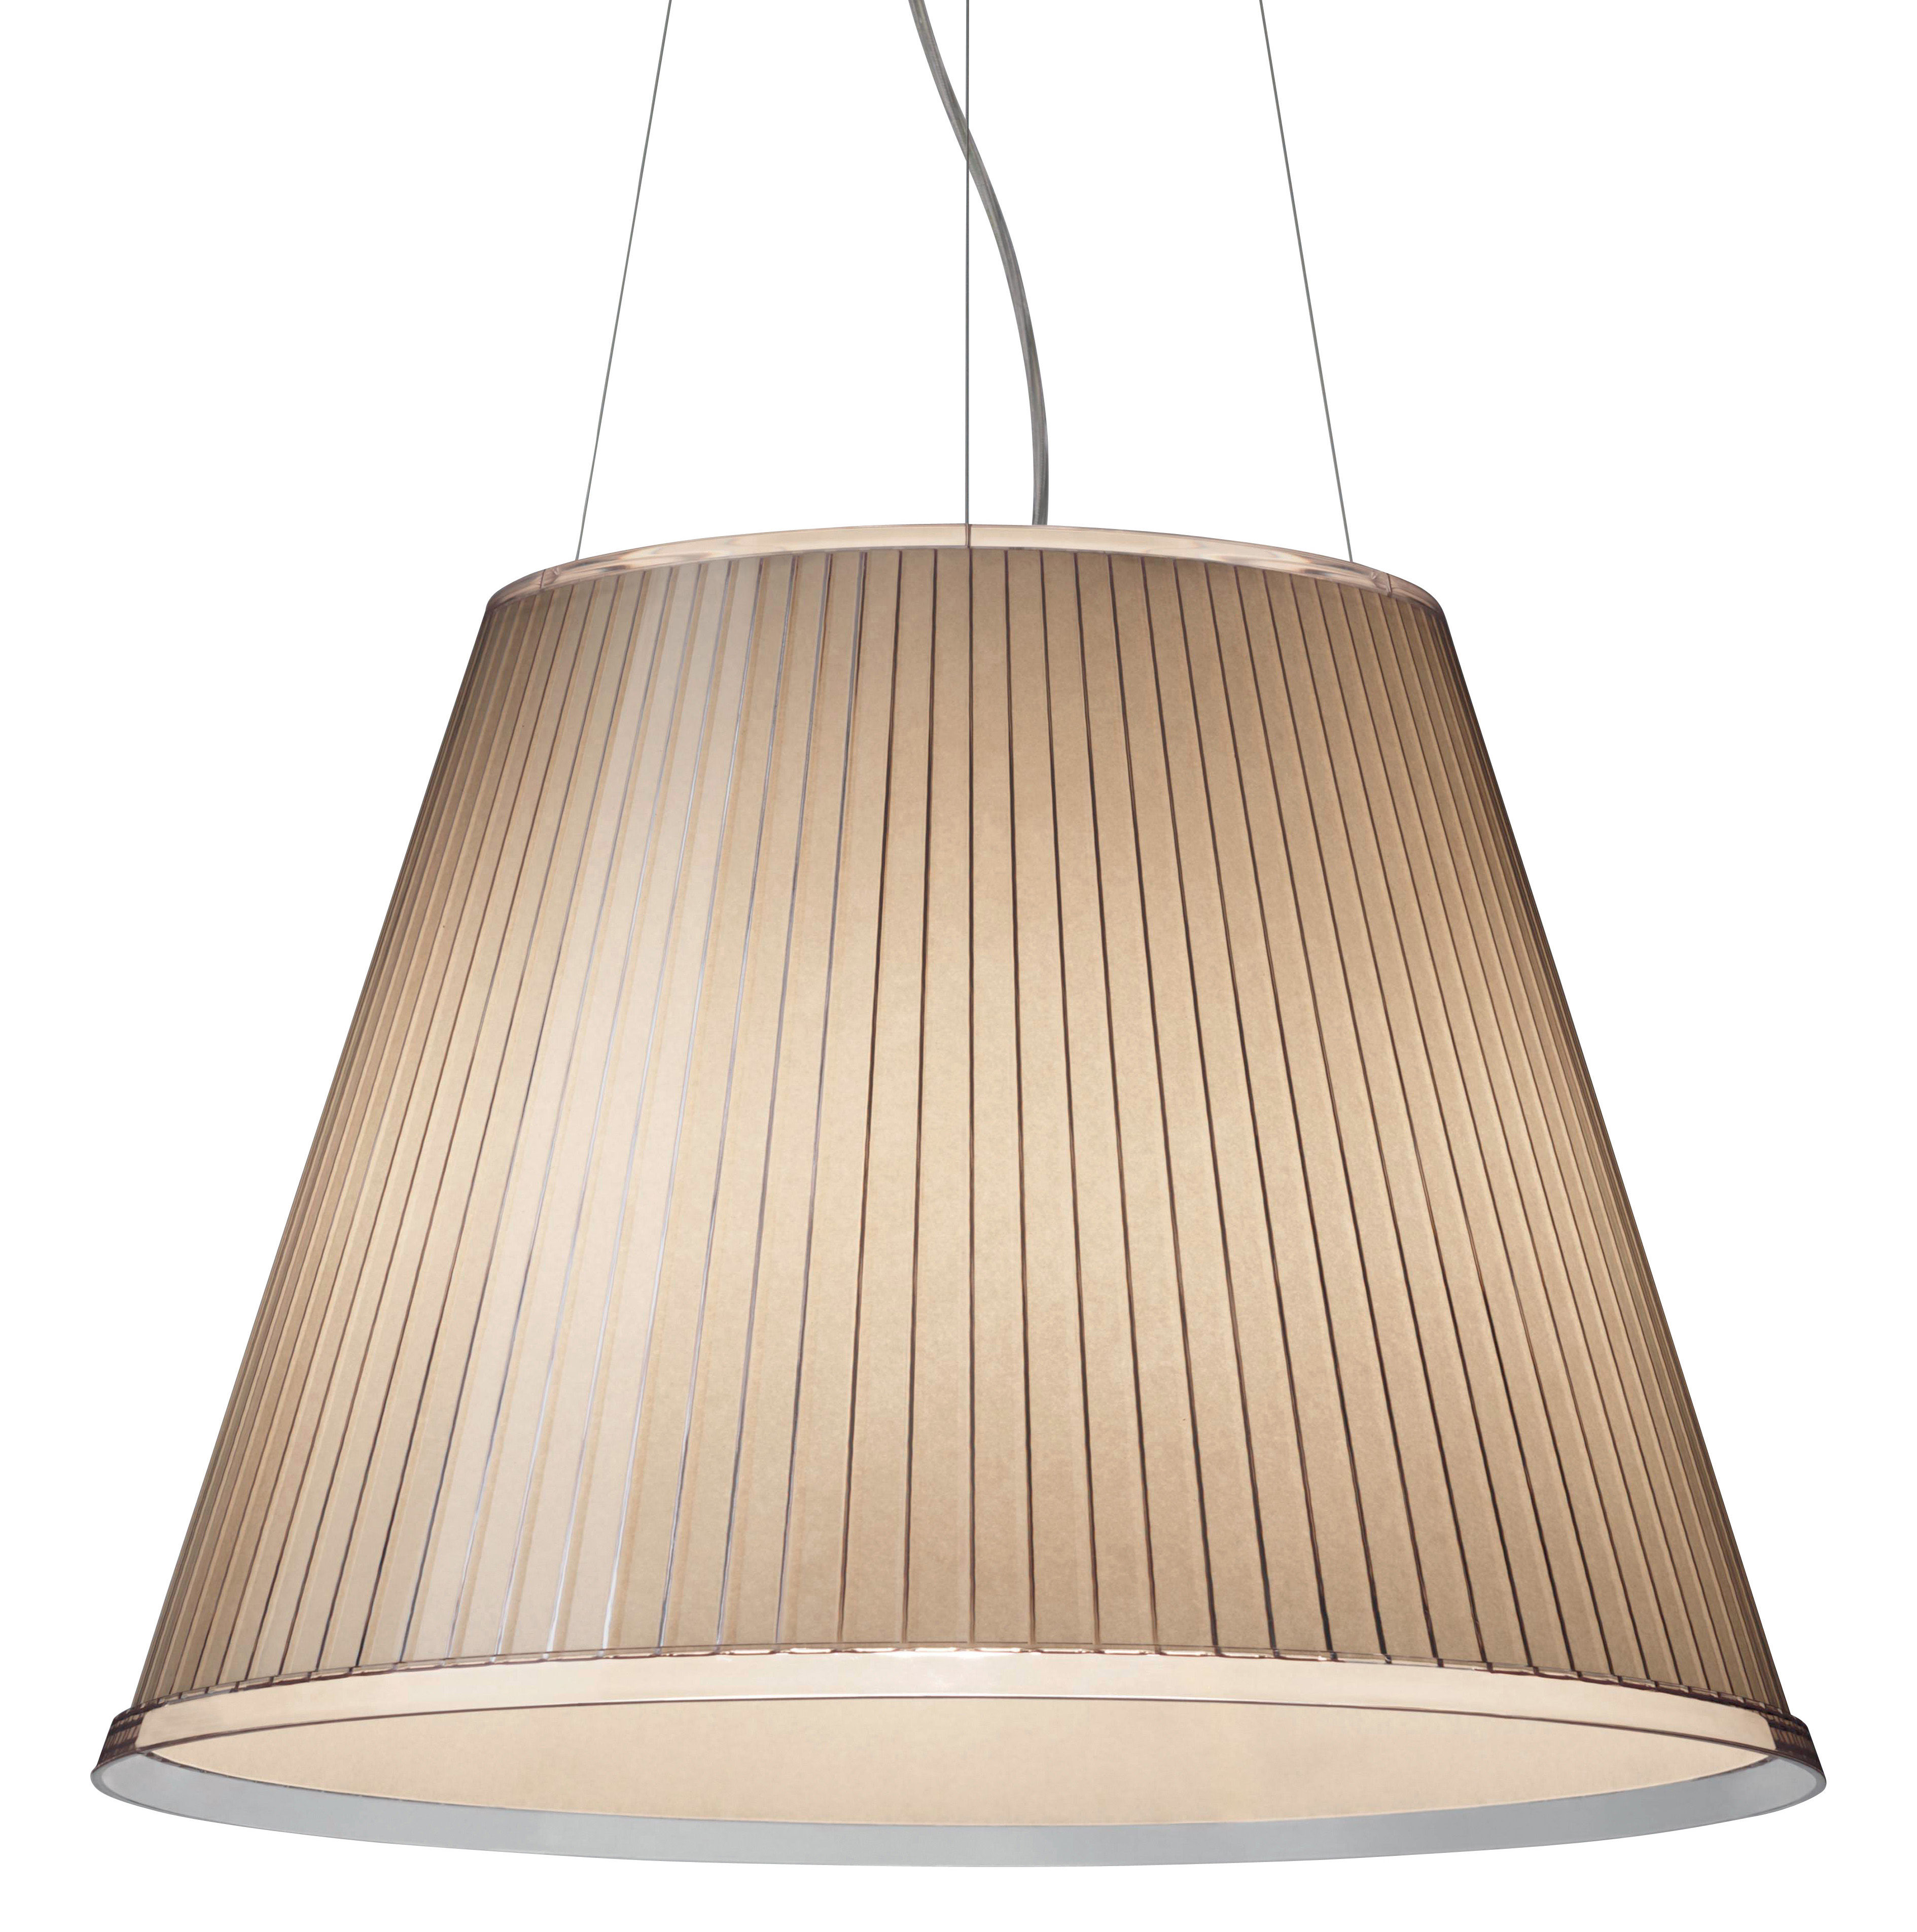 Lighting - Pendant Lighting - Choose Mega Pendant by Artemide - Parchment paper / Halogen - Parchment paper, Polycarbonate